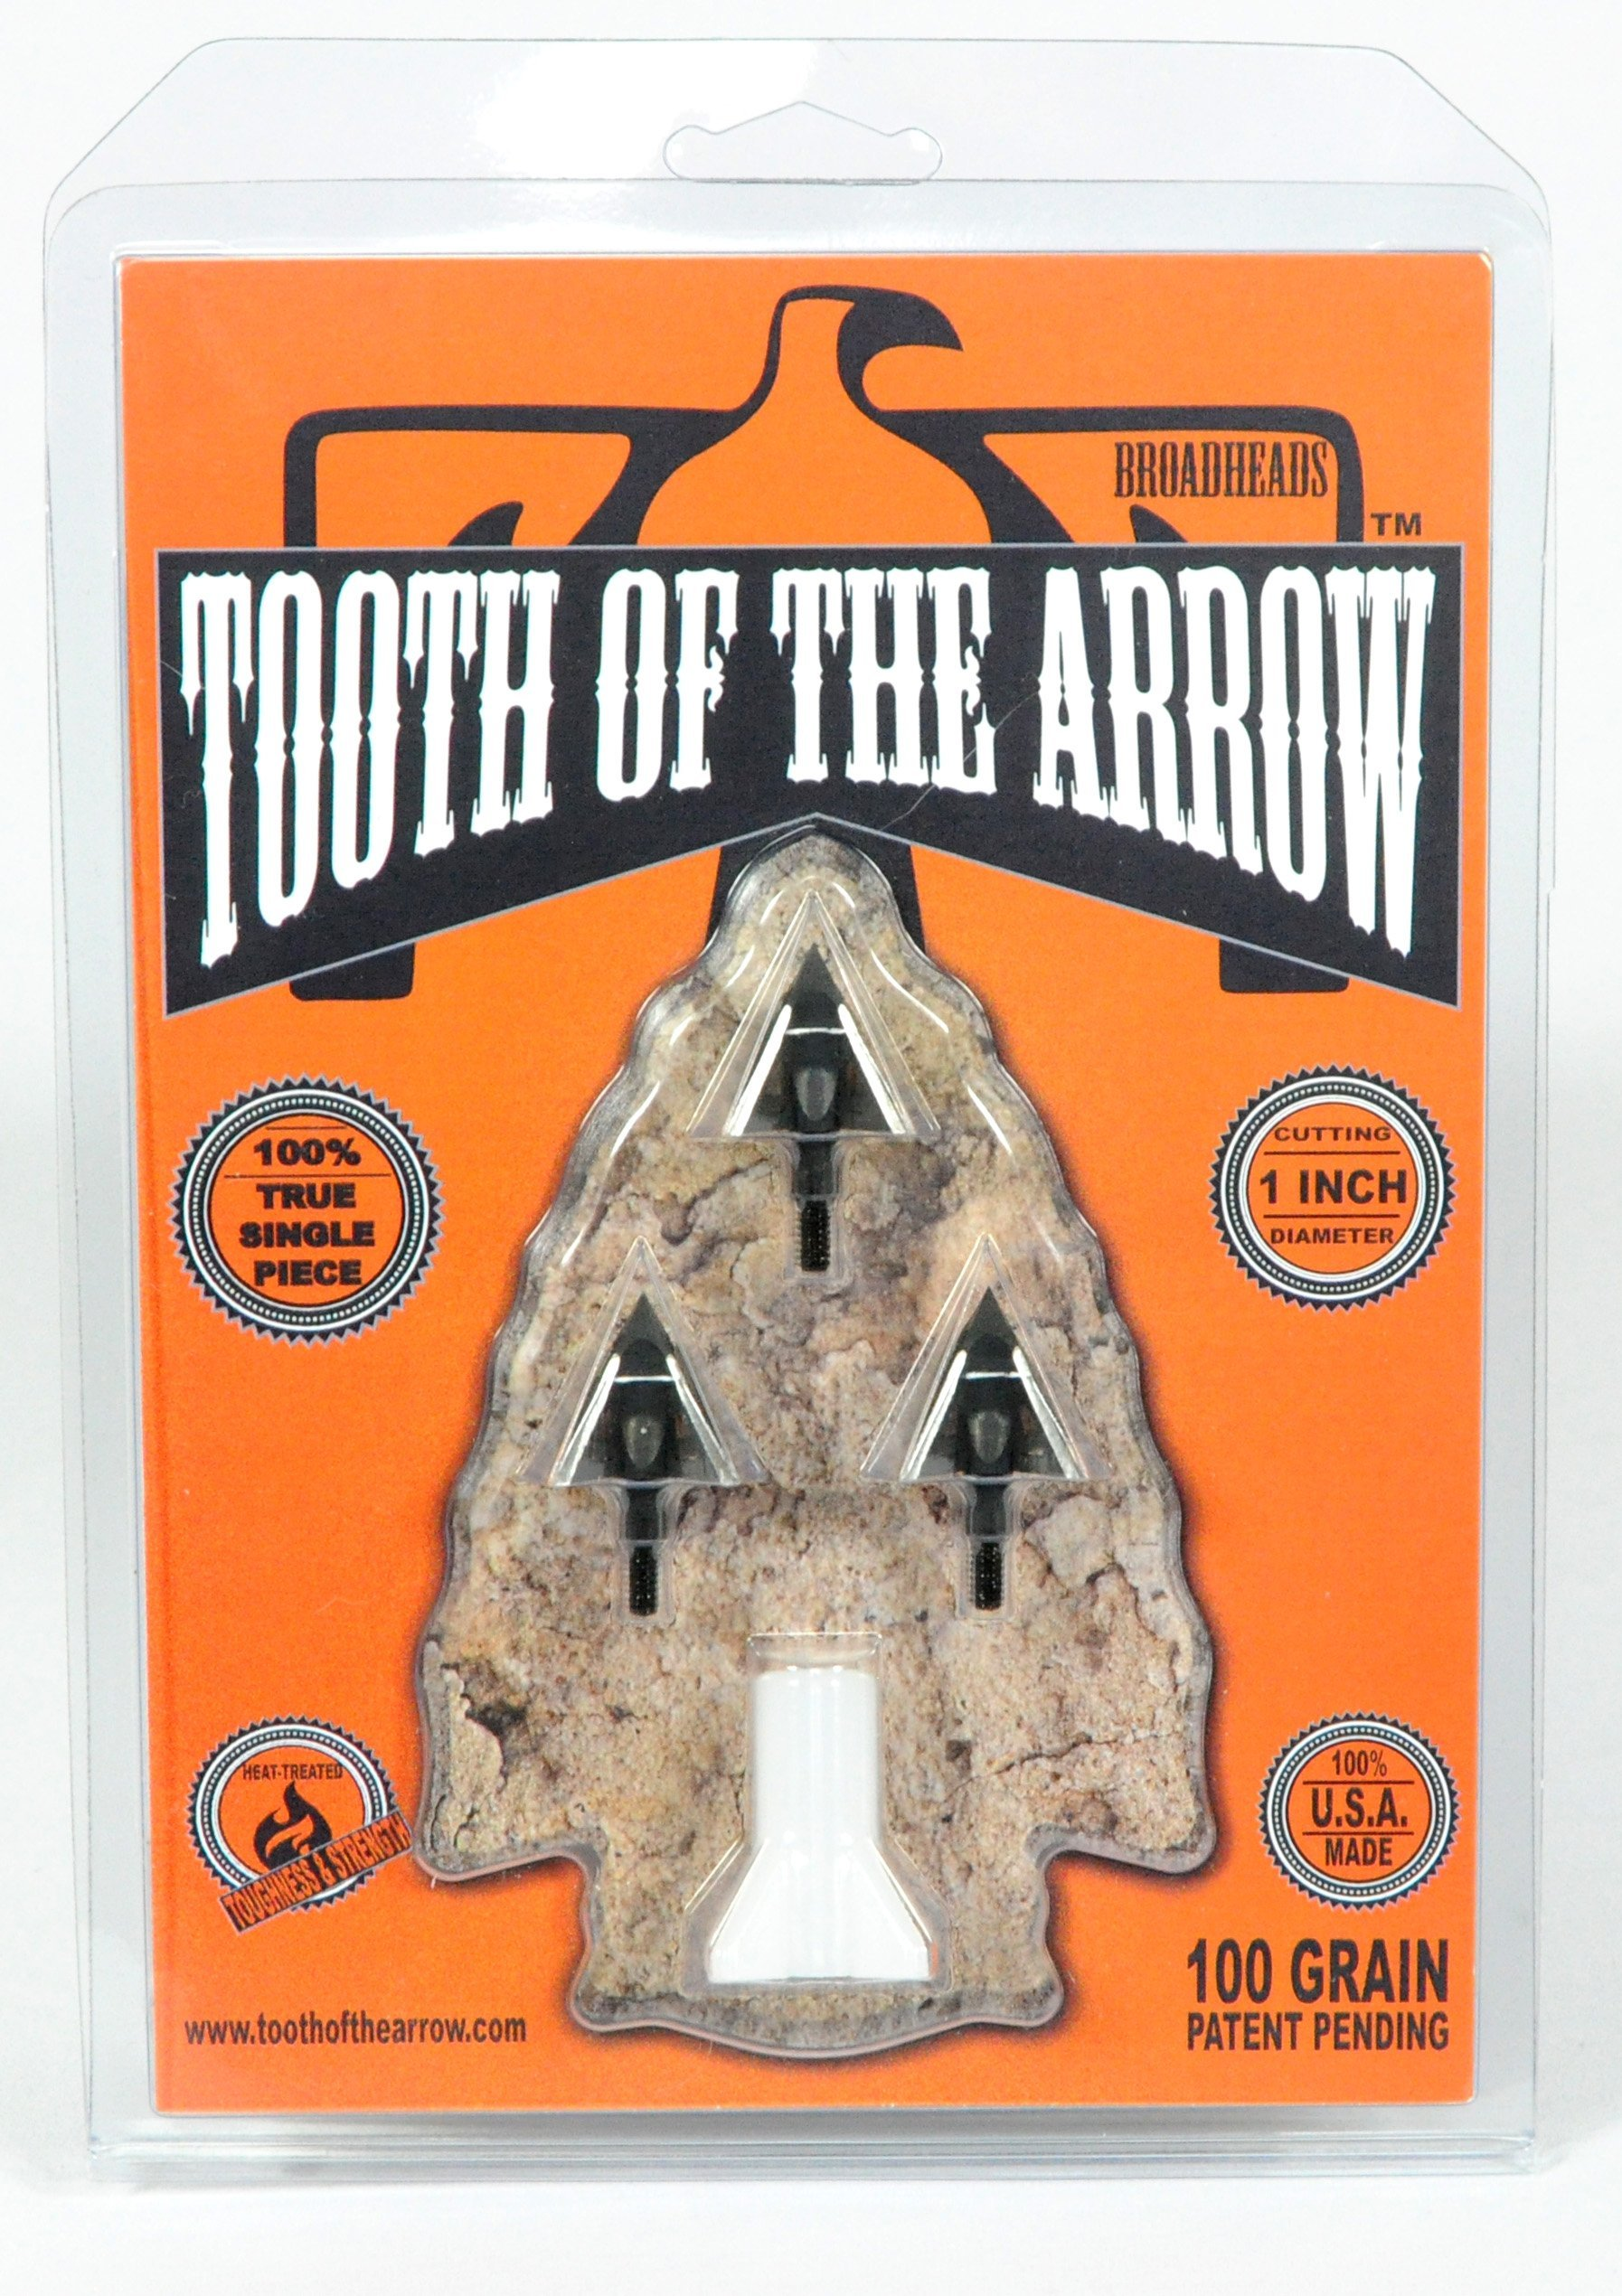 Tooth Of The Arrow Broadheads (3 Pack), Black, 100 Grain by Tooth Of The Arrow